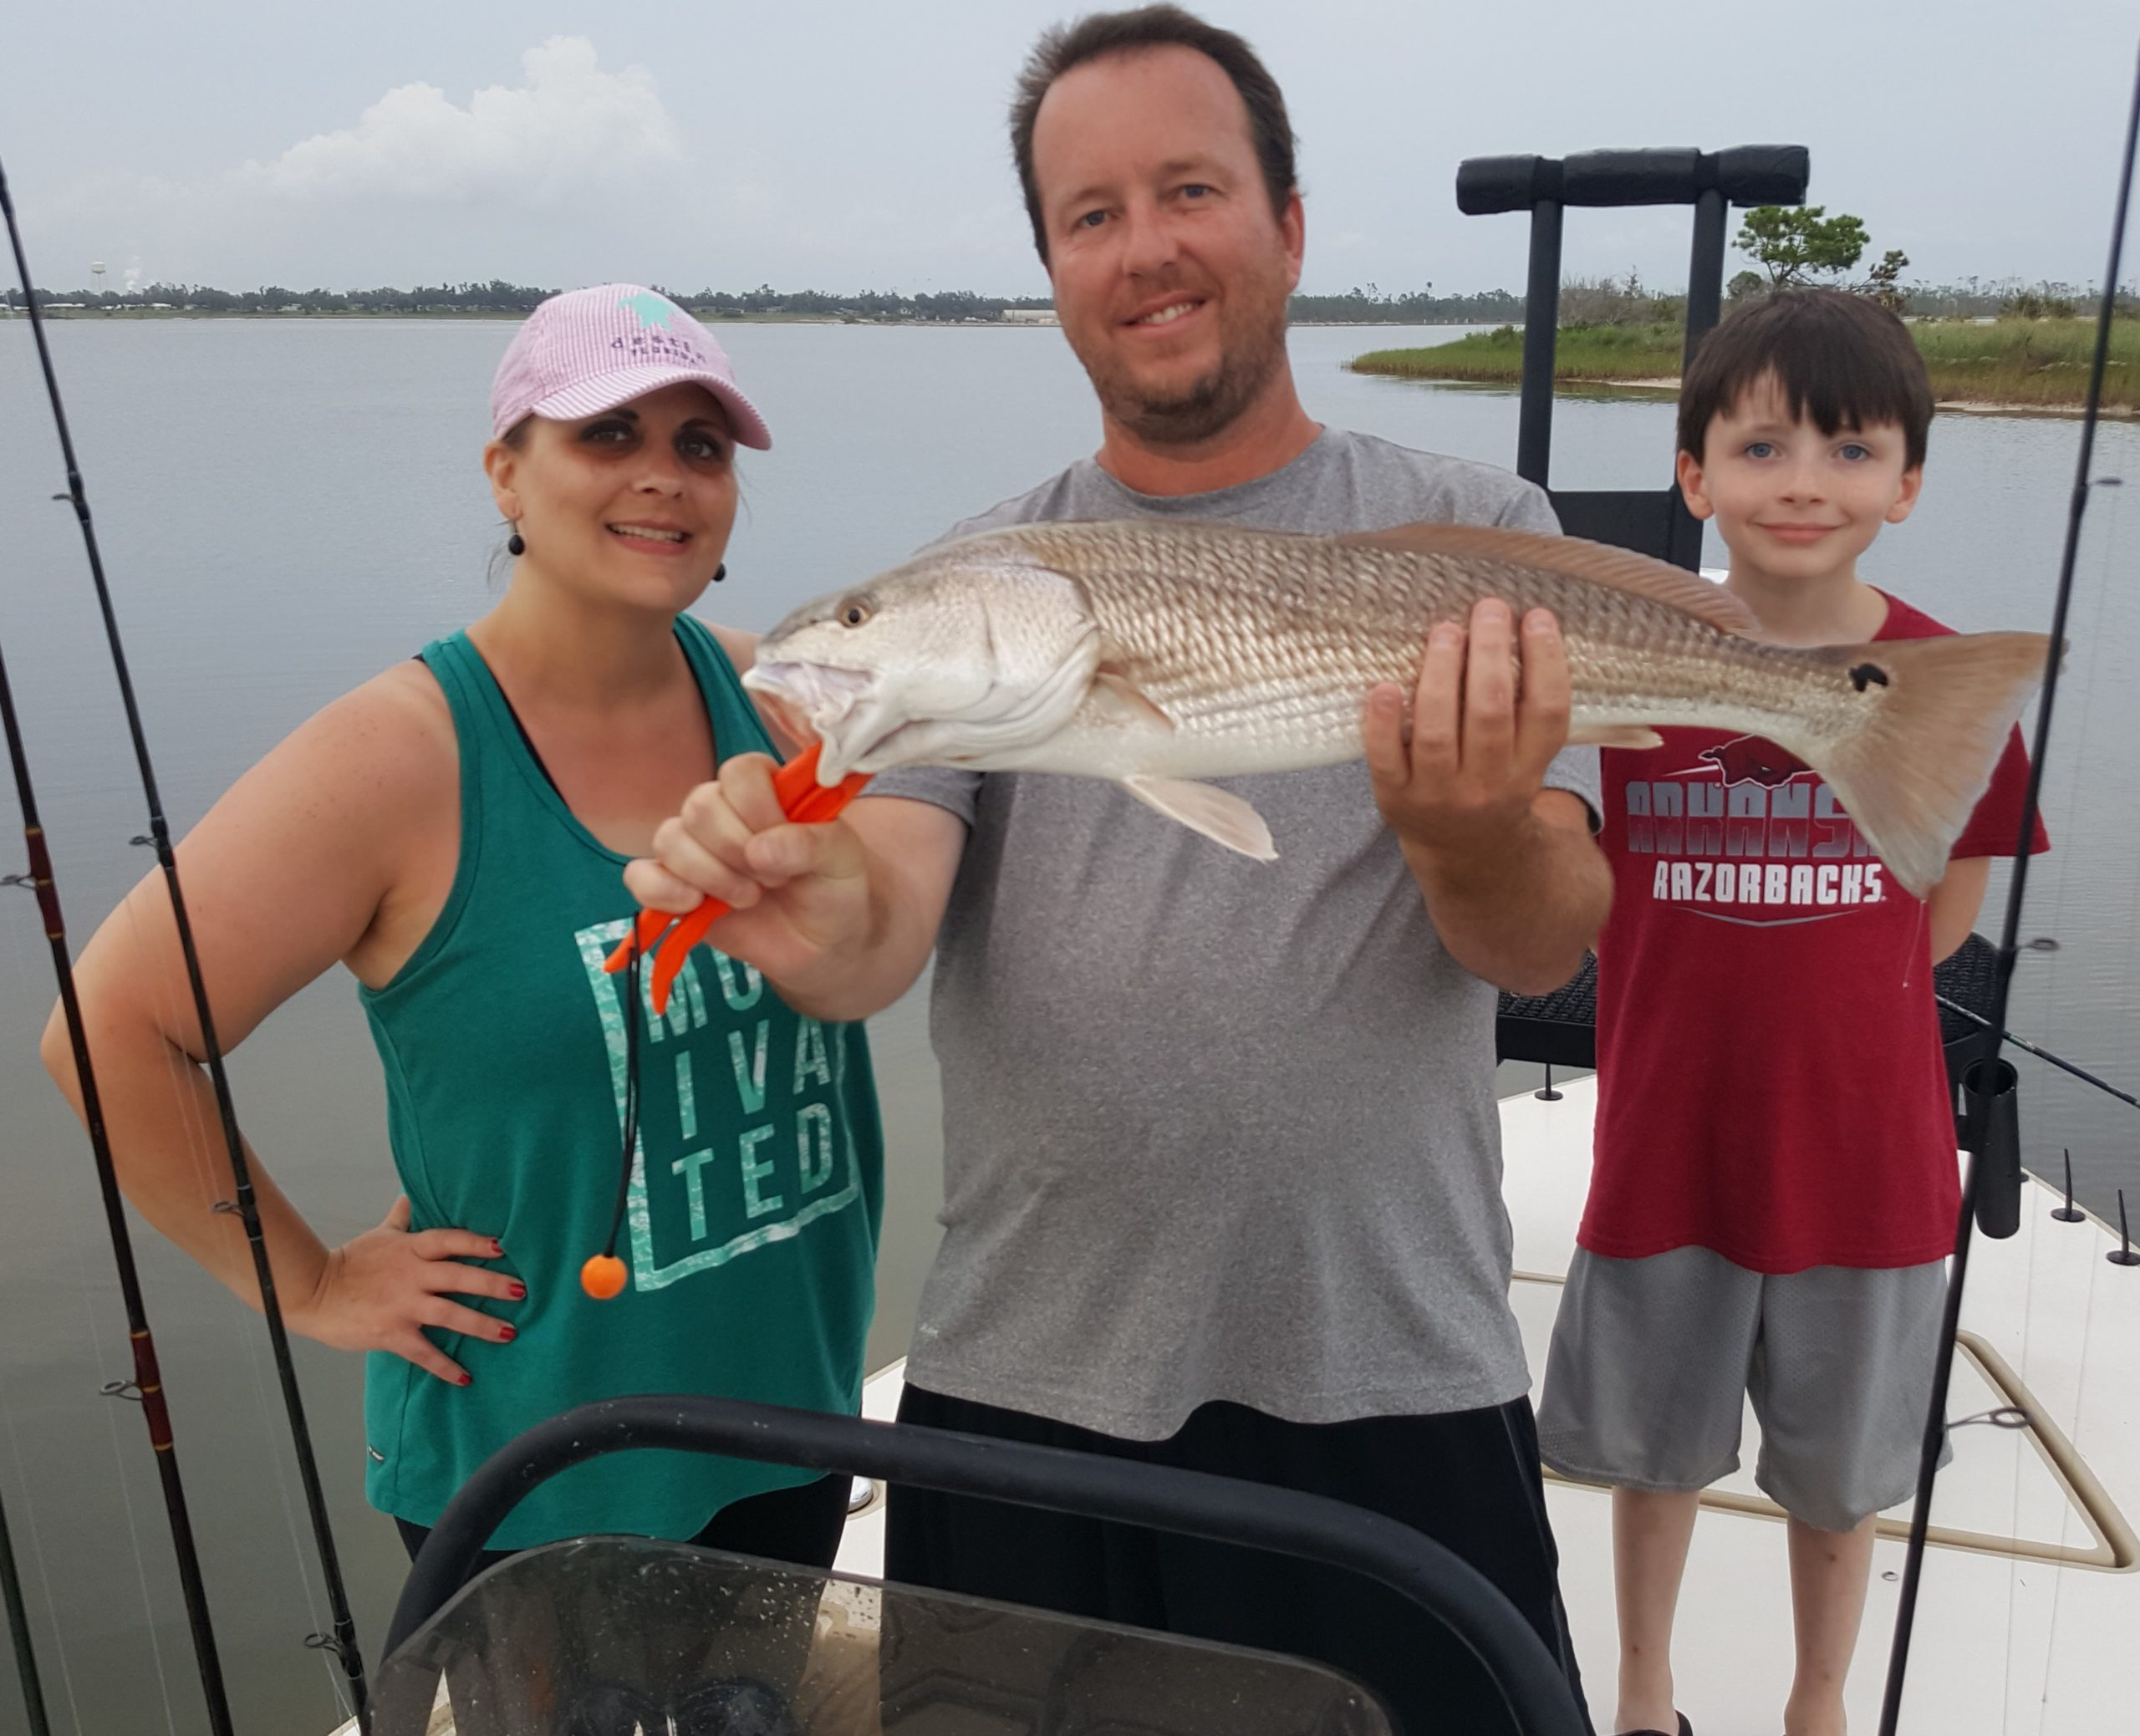 07 14 20 Brock and family with red